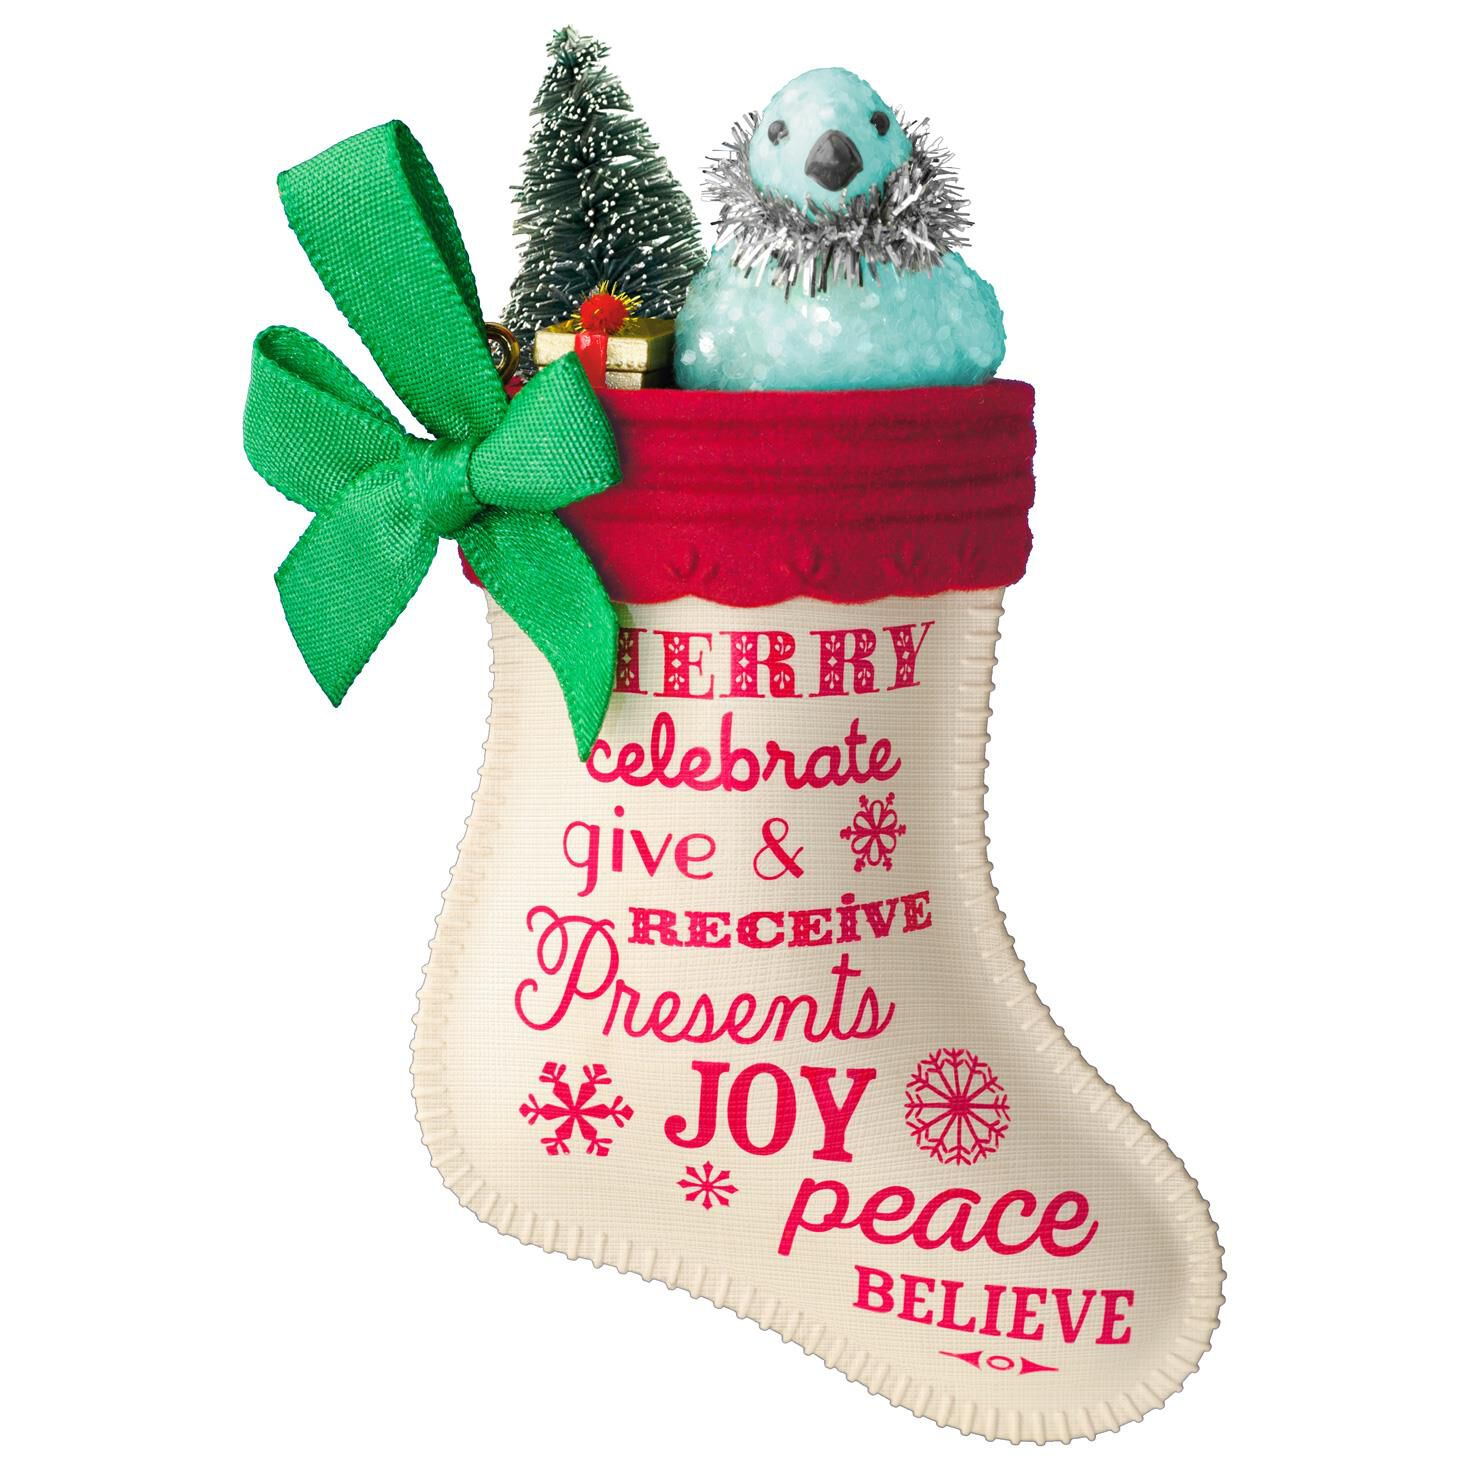 Rutgers ornament - Christmas Stocking Ornaments The Joy Of Giving Christmas Stocking Ornament Keepsake Ornaments Hallmark